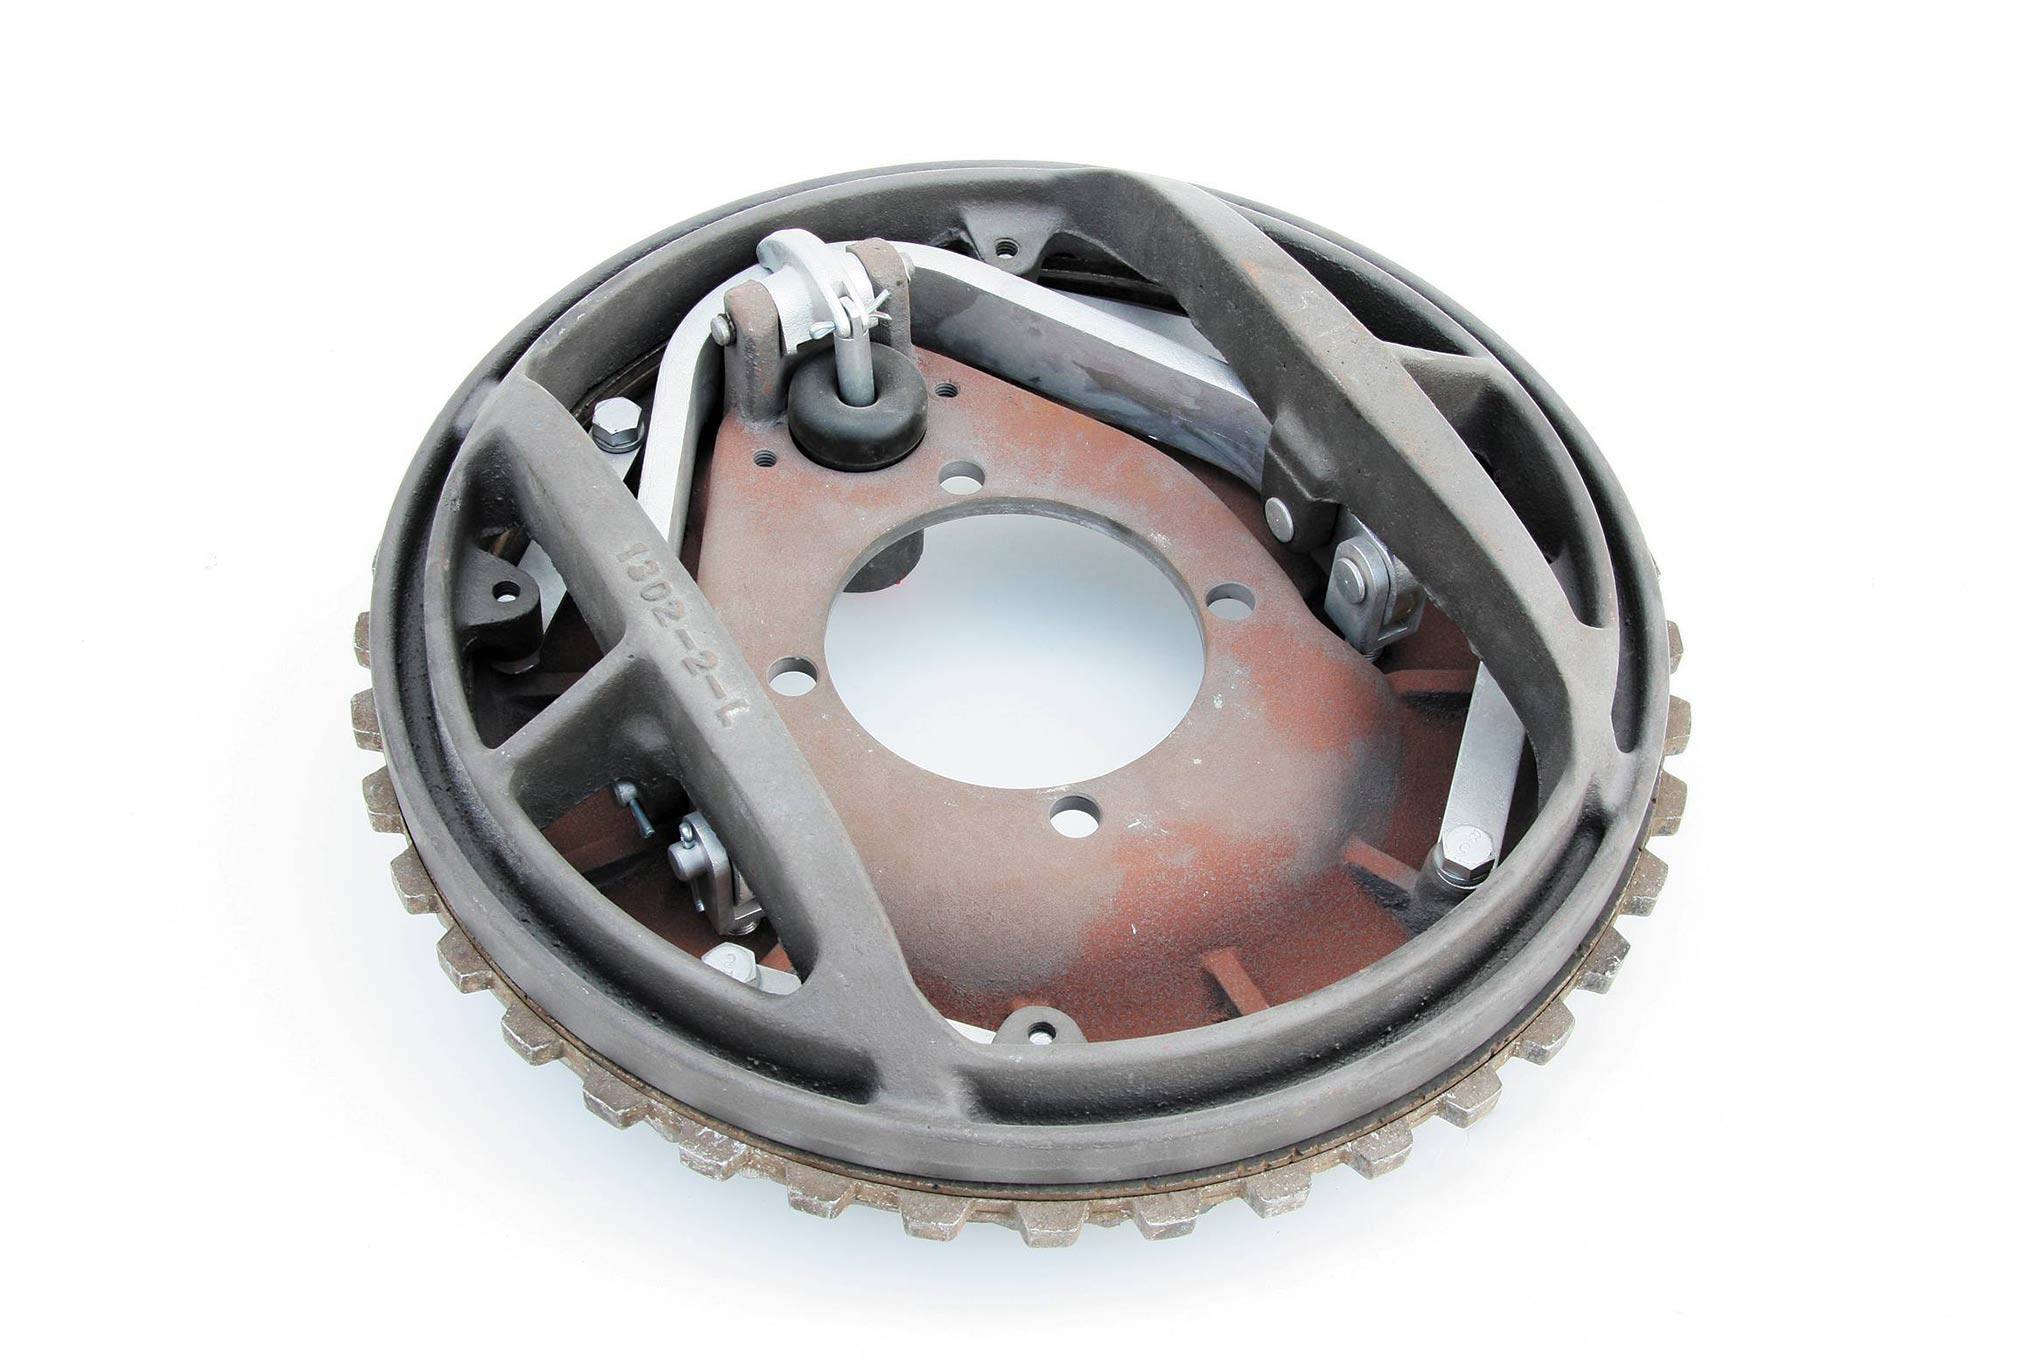 """Think of Kinmonts as a kind of clutch assembly. The horseshoe-shaped section forces a circular pressure plate against the friction material, which is on both sides of a floating disc that's sandwiched between the pressure plate and the stationary backing plate. Four simple spring straps return the plate to """"at rest"""" position. Kinmont brakes were designed to be operated by a standard Ford brake master cylinder. No proportioning valve is required, if you install the Kinmonts on all four corners."""